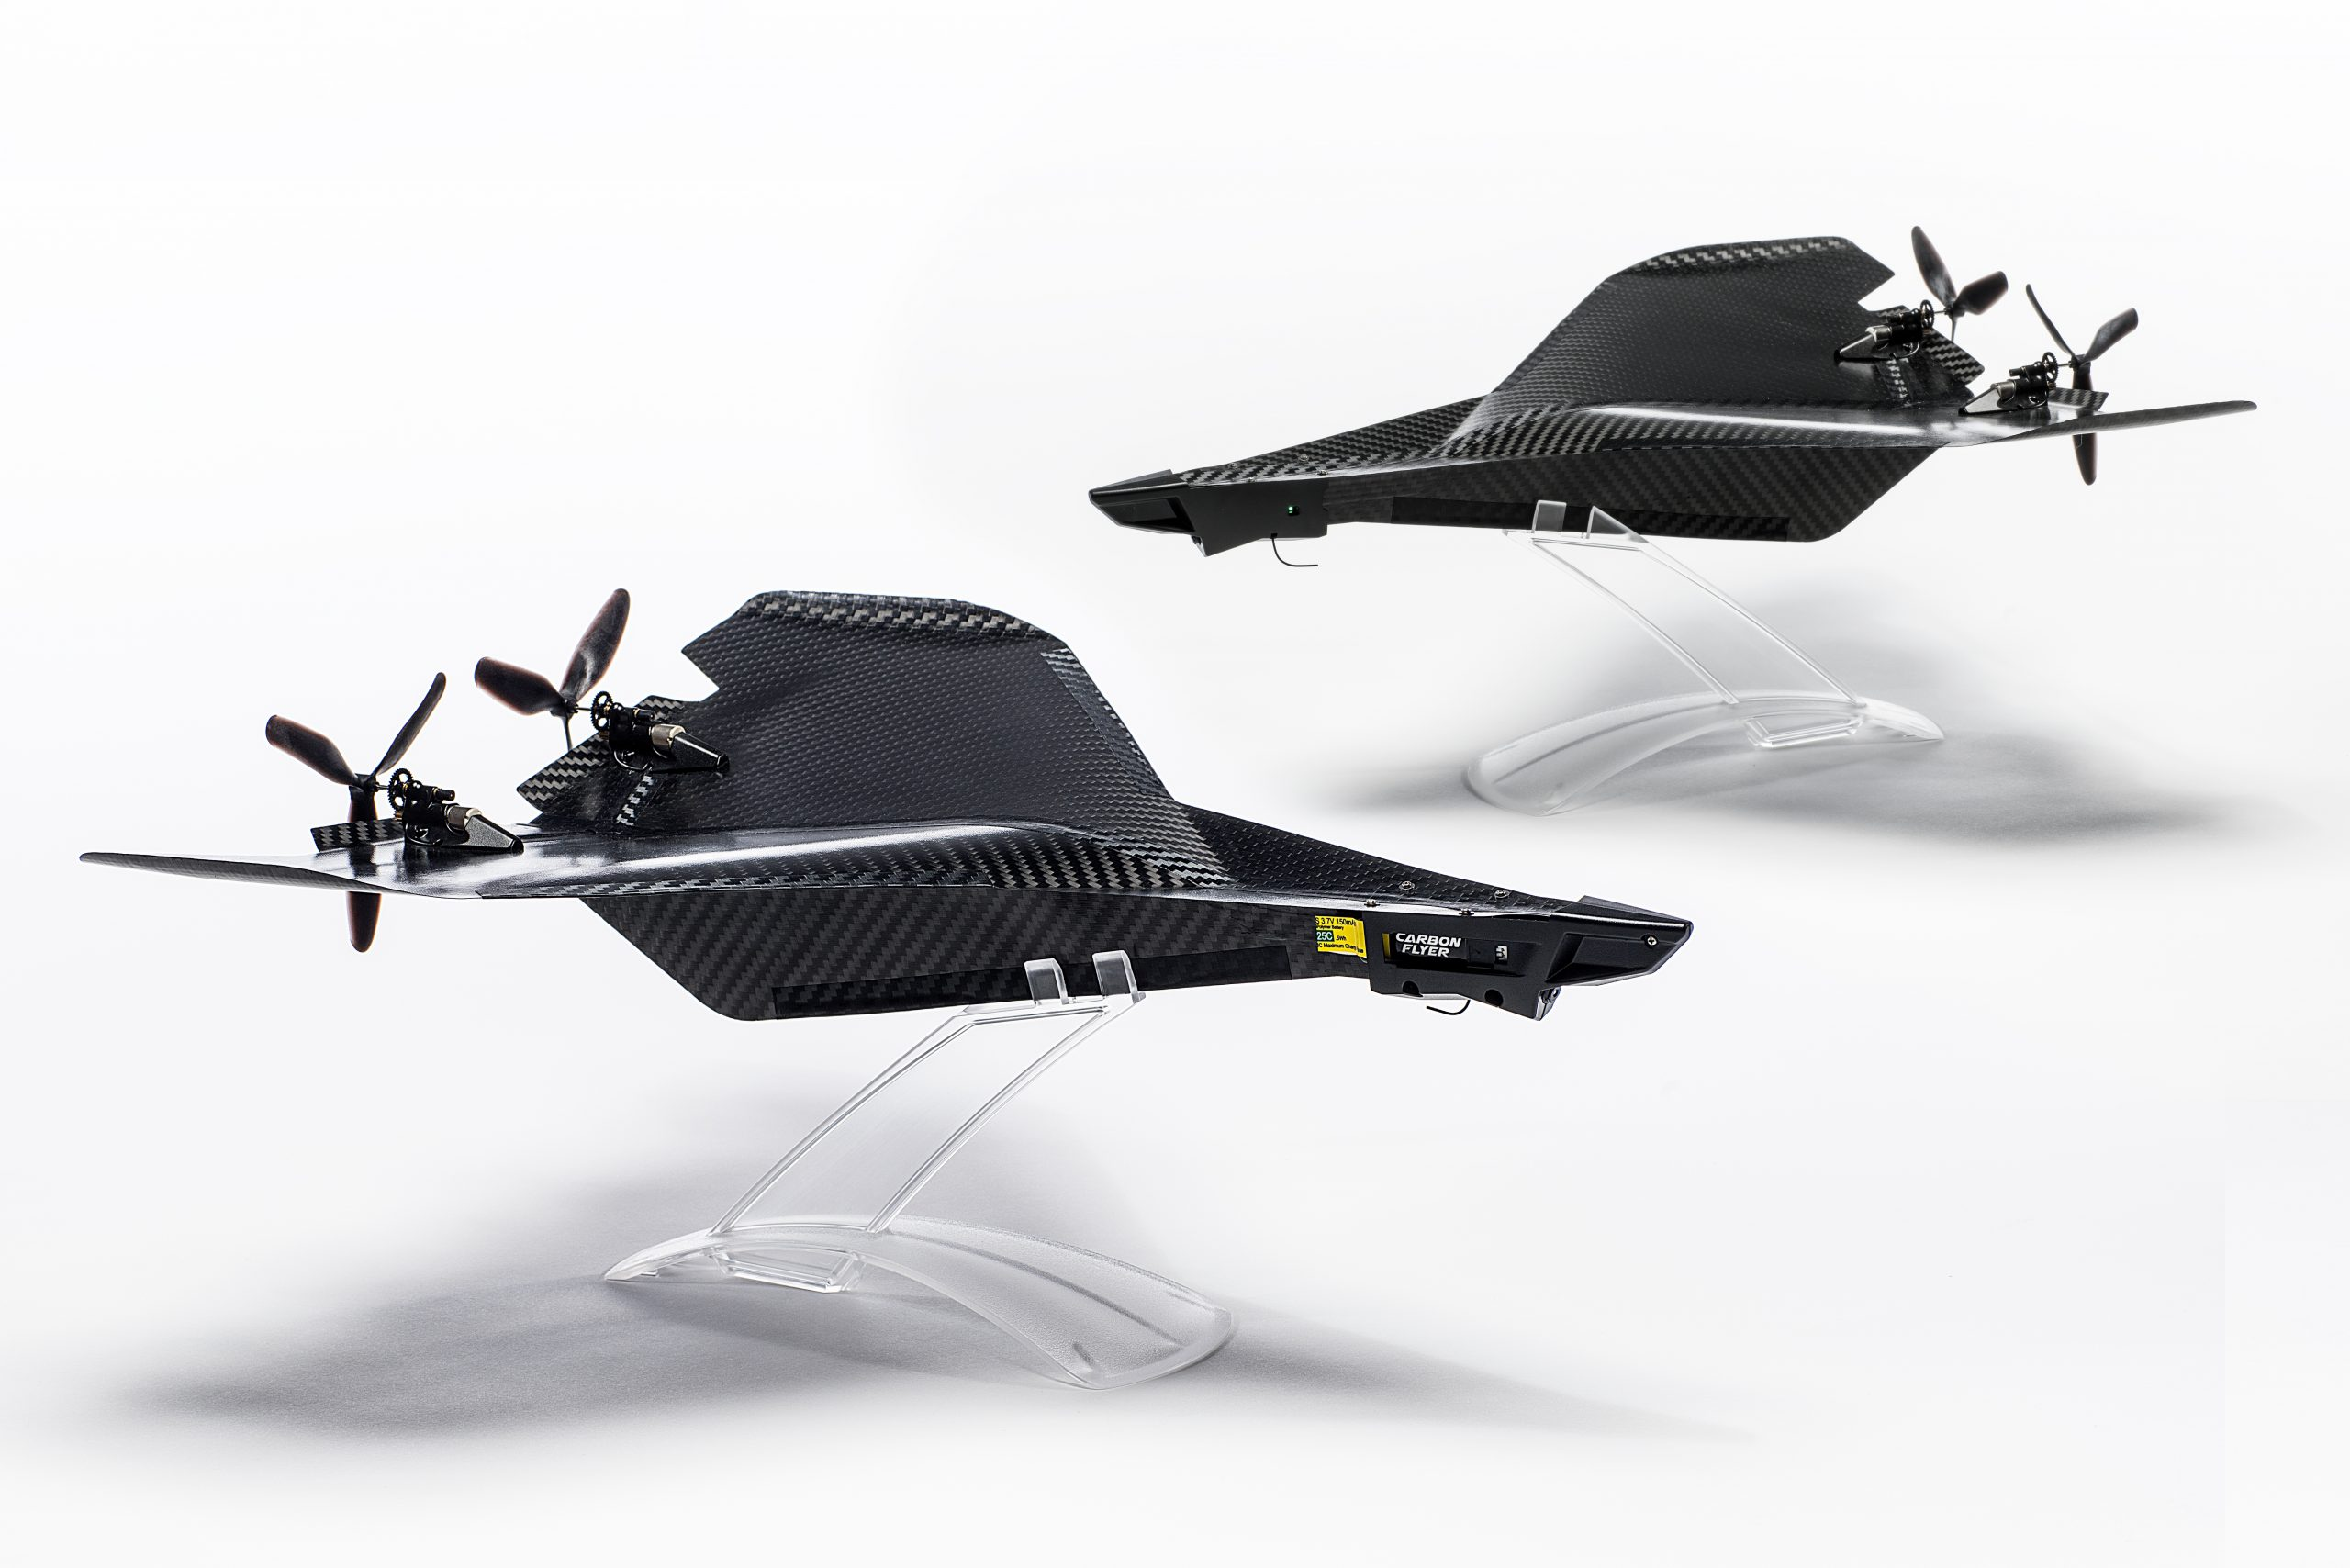 Two Carbon Flyer remote control planes by Trident Invents